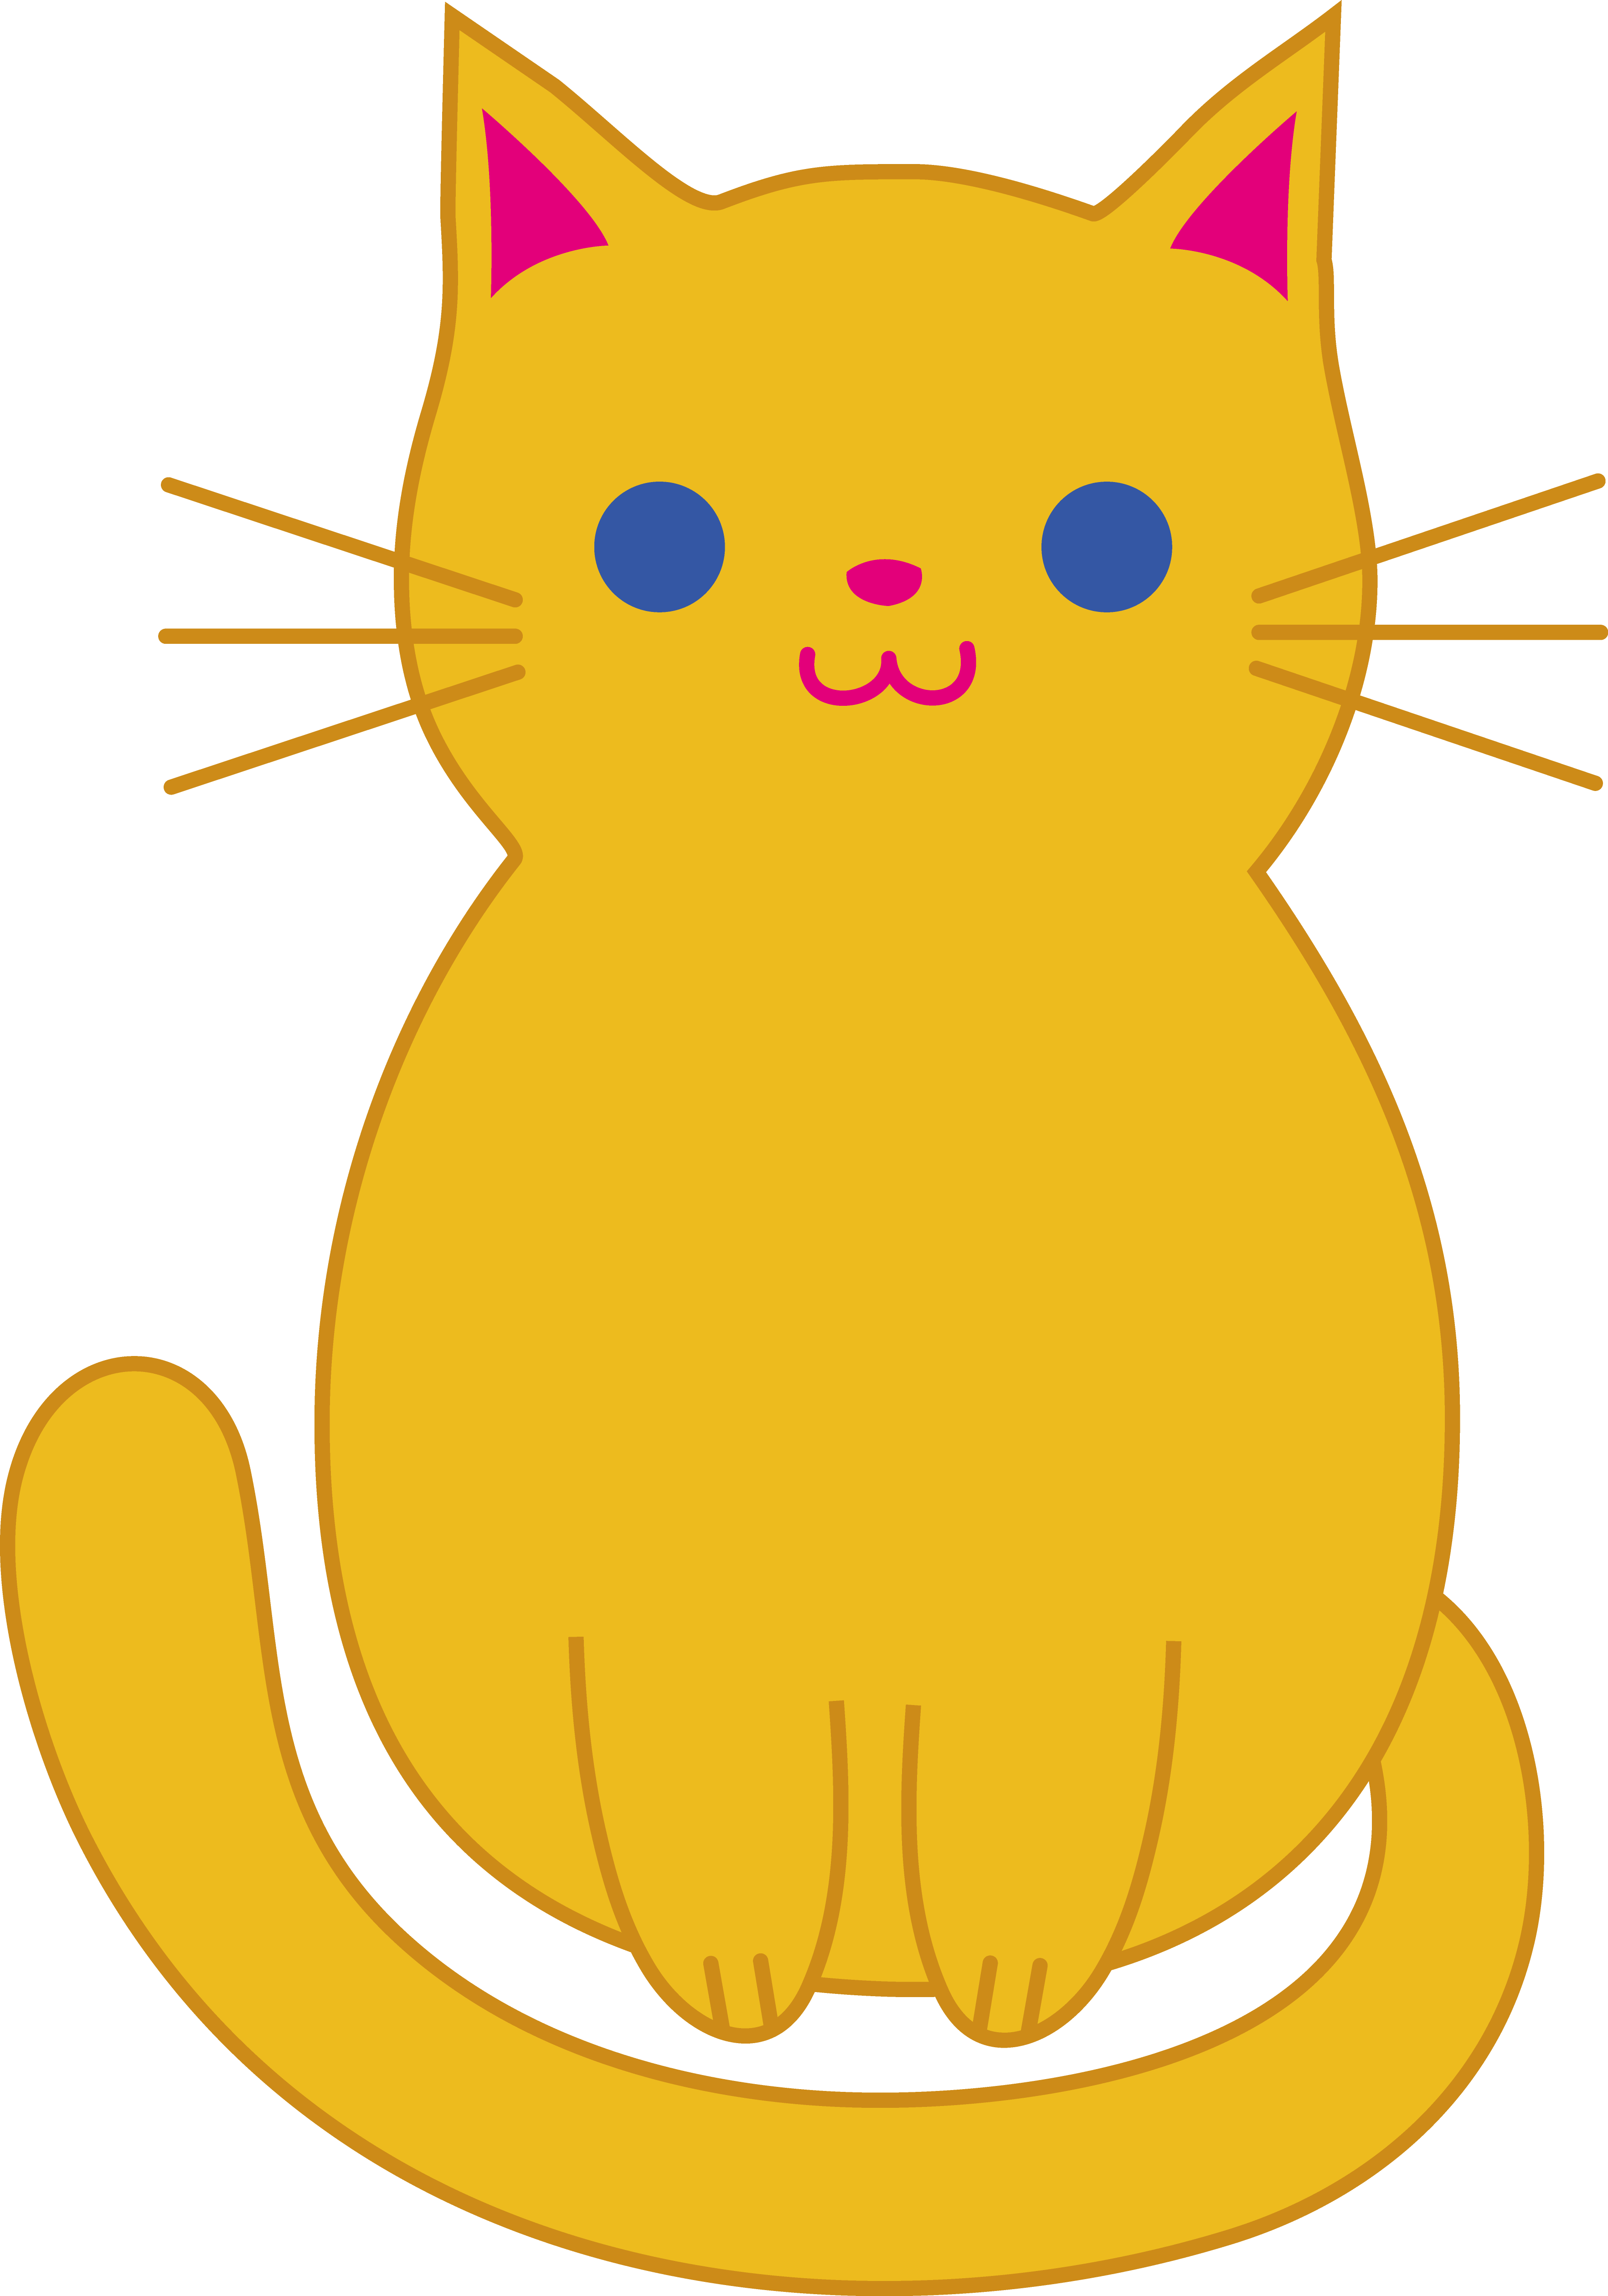 Cute Cat Clip Art | Clipart library - Free Clipart Images